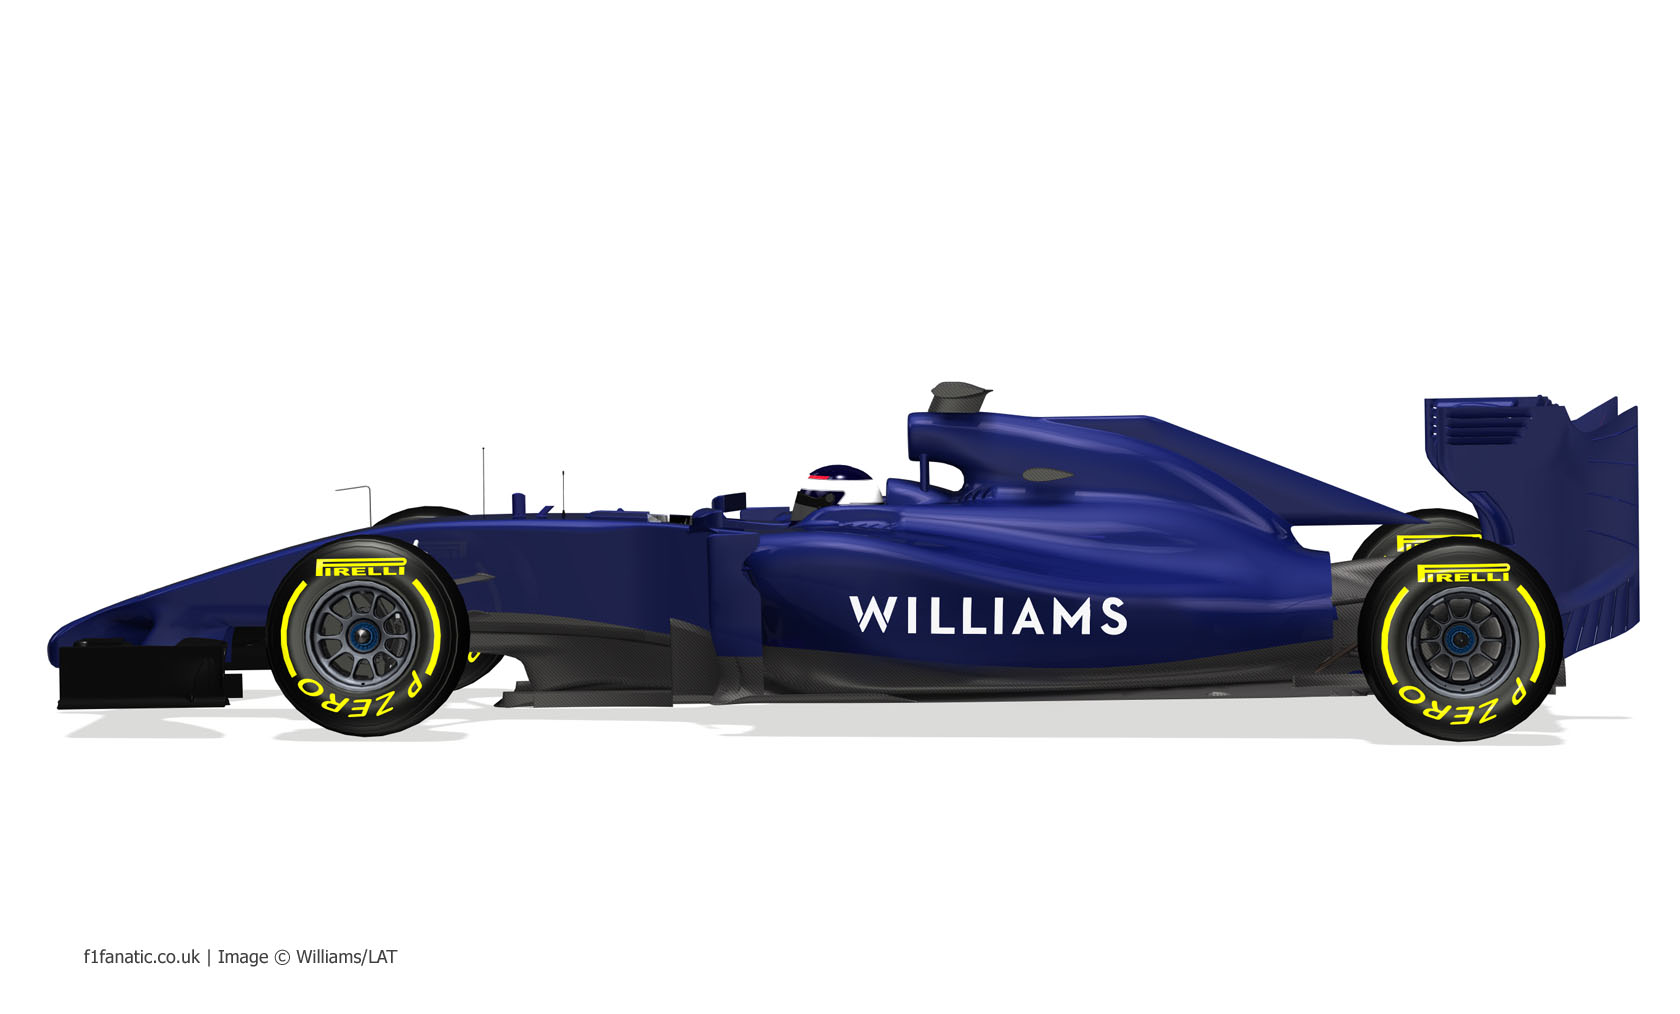 williams-fw36-2014-31.jpg